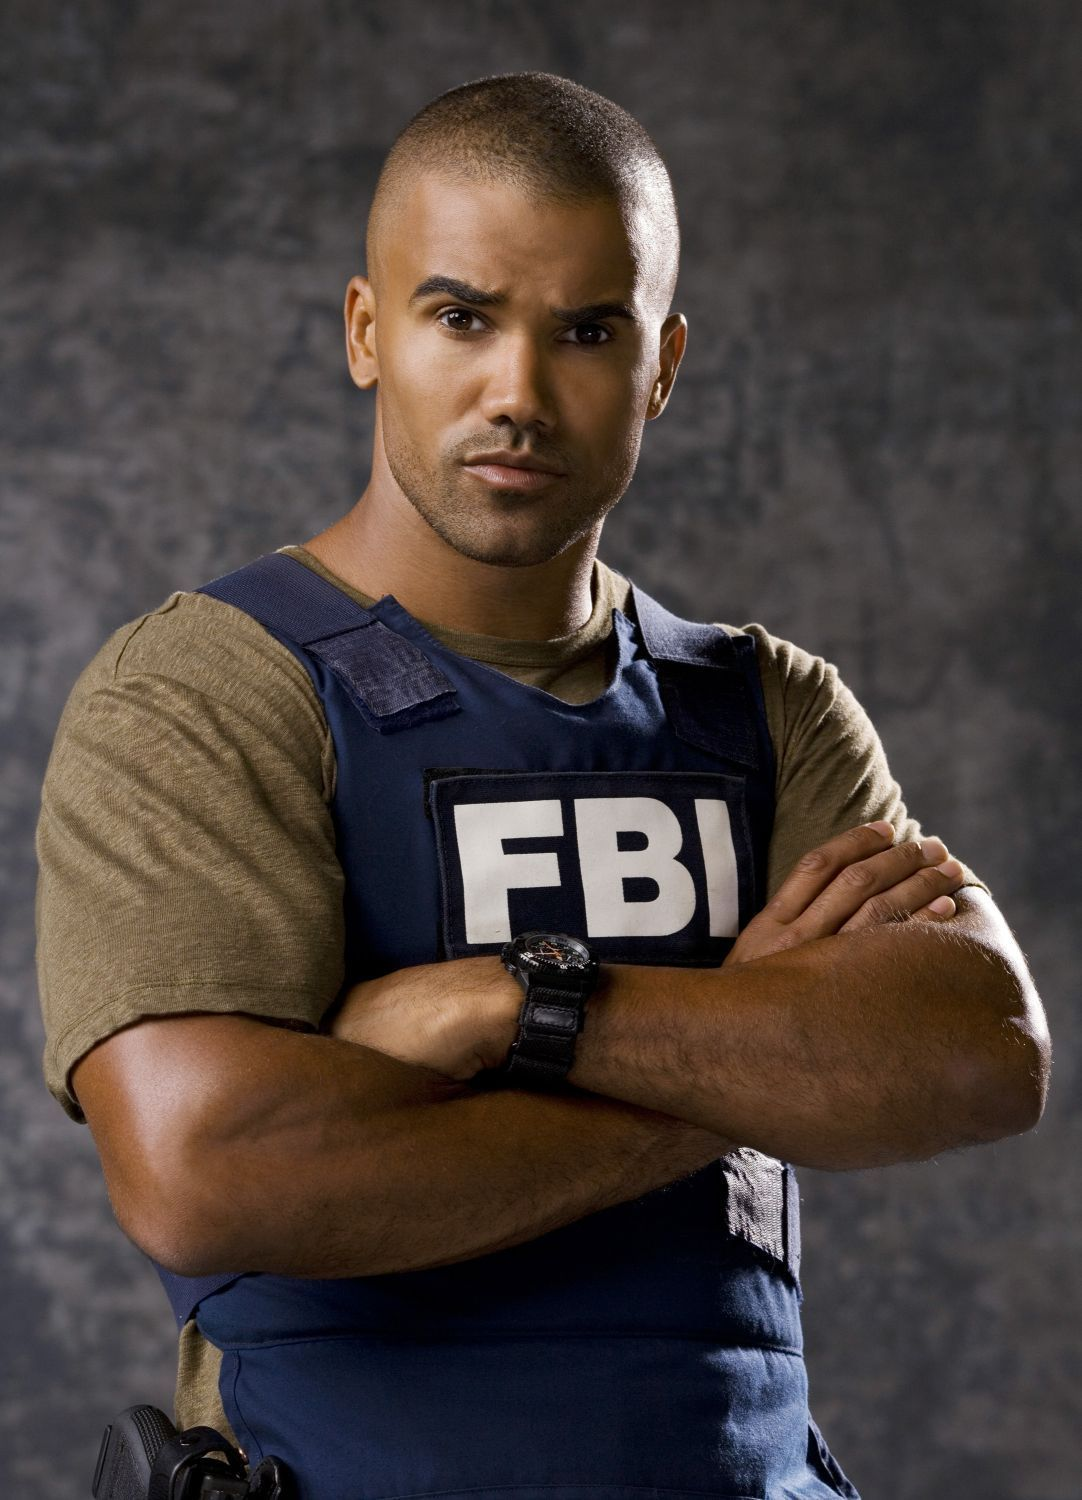 Sometimes Criminal Minds scares me silly but he is WORTH it